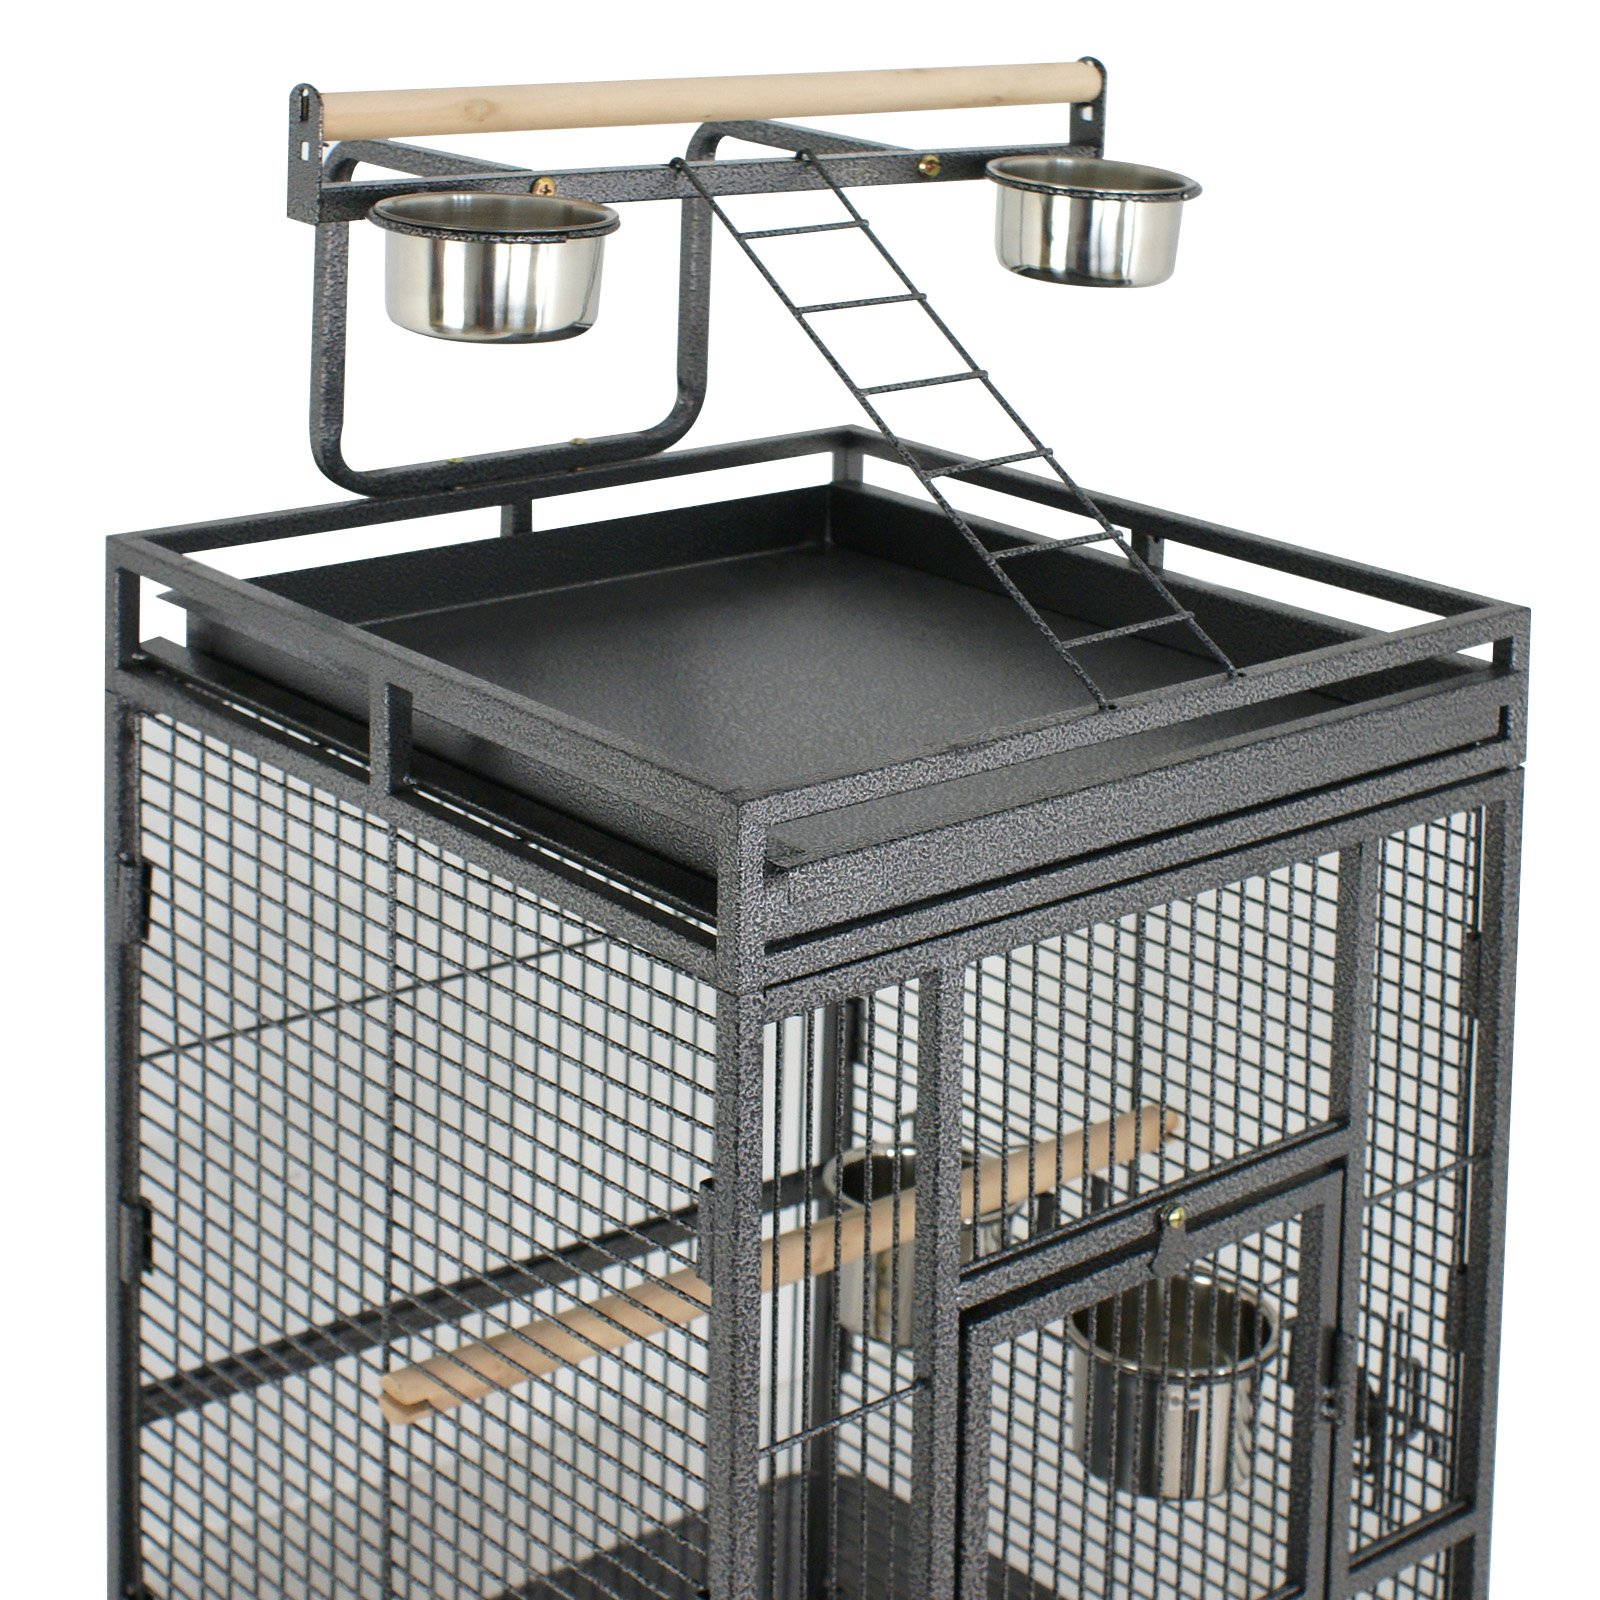 ZENY Bird Cage Wrought Iron 61-Inch Pet Bird CagePlay Top Parrot Cockatiel Cockatoo Parakeet Finches Birdcage by ZENY